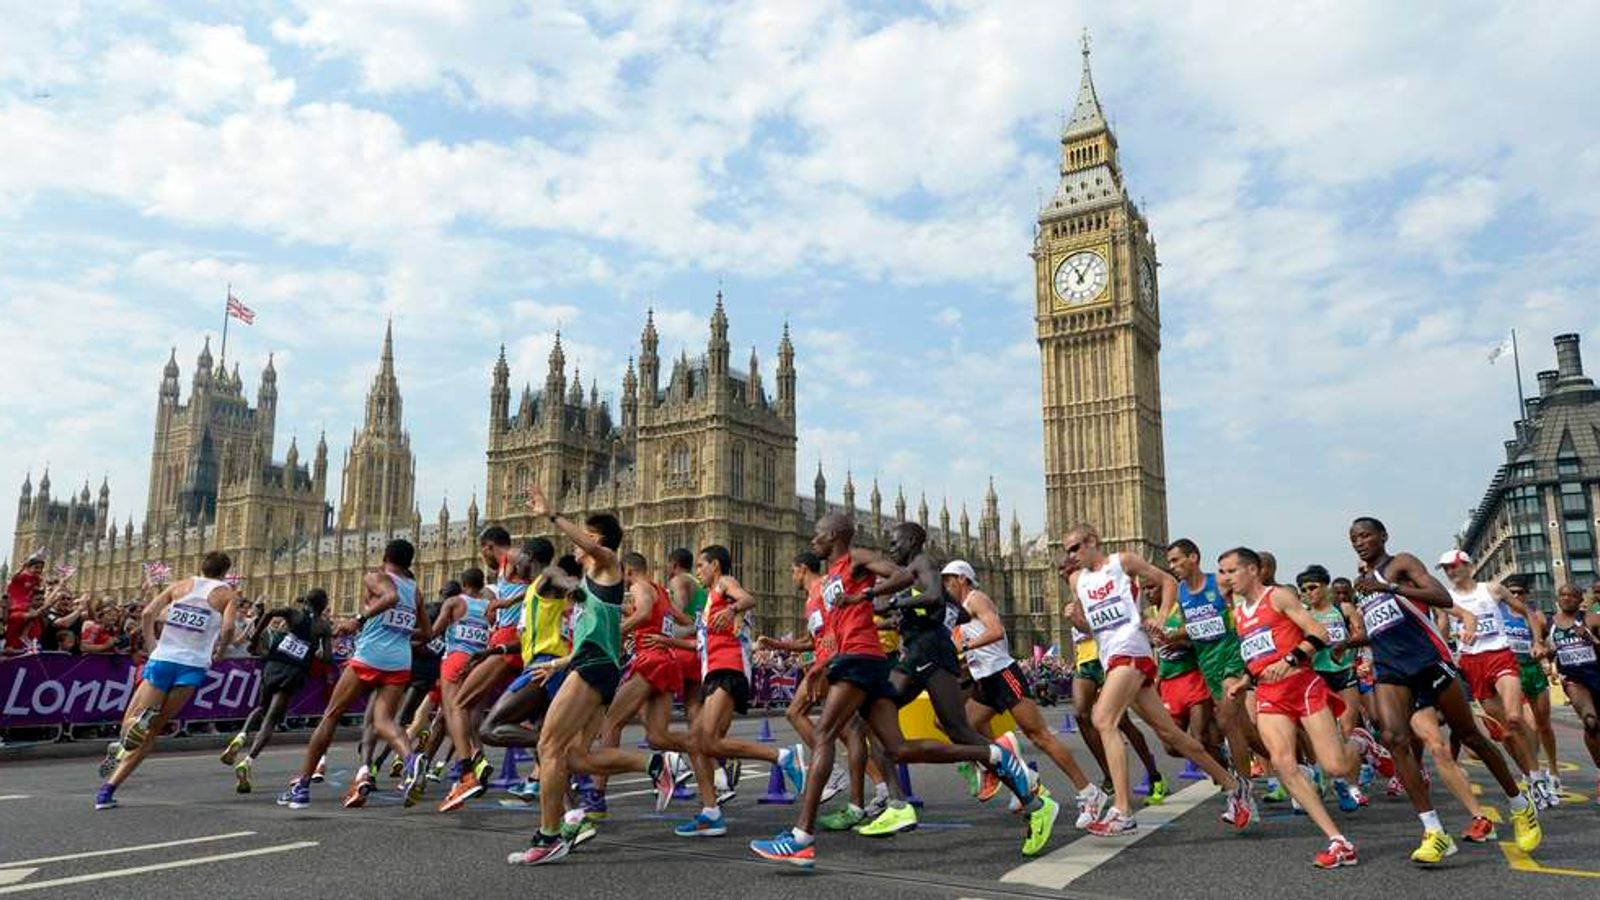 Athletes run in front of Big Ben during the men's marathon in London.